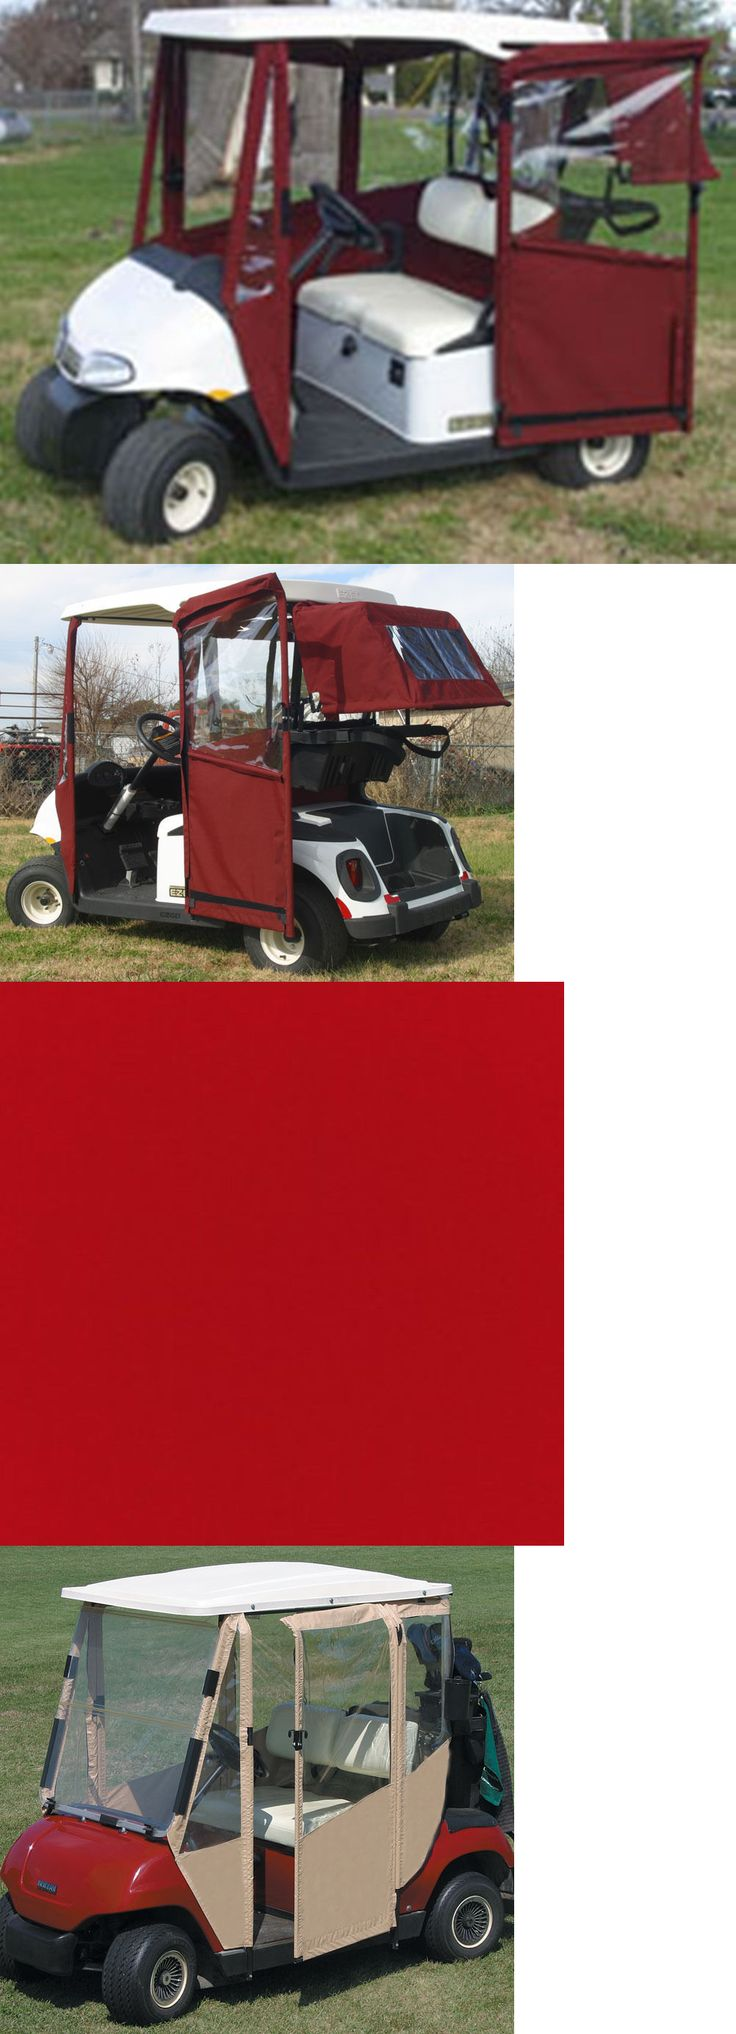 Other Golf Accessories 1514: Doorworks Club Car Prec Logo Red Sunbrella Golf Cart Enclosure Hinged Door -> BUY IT NOW ONLY: $669.0 on eBay!